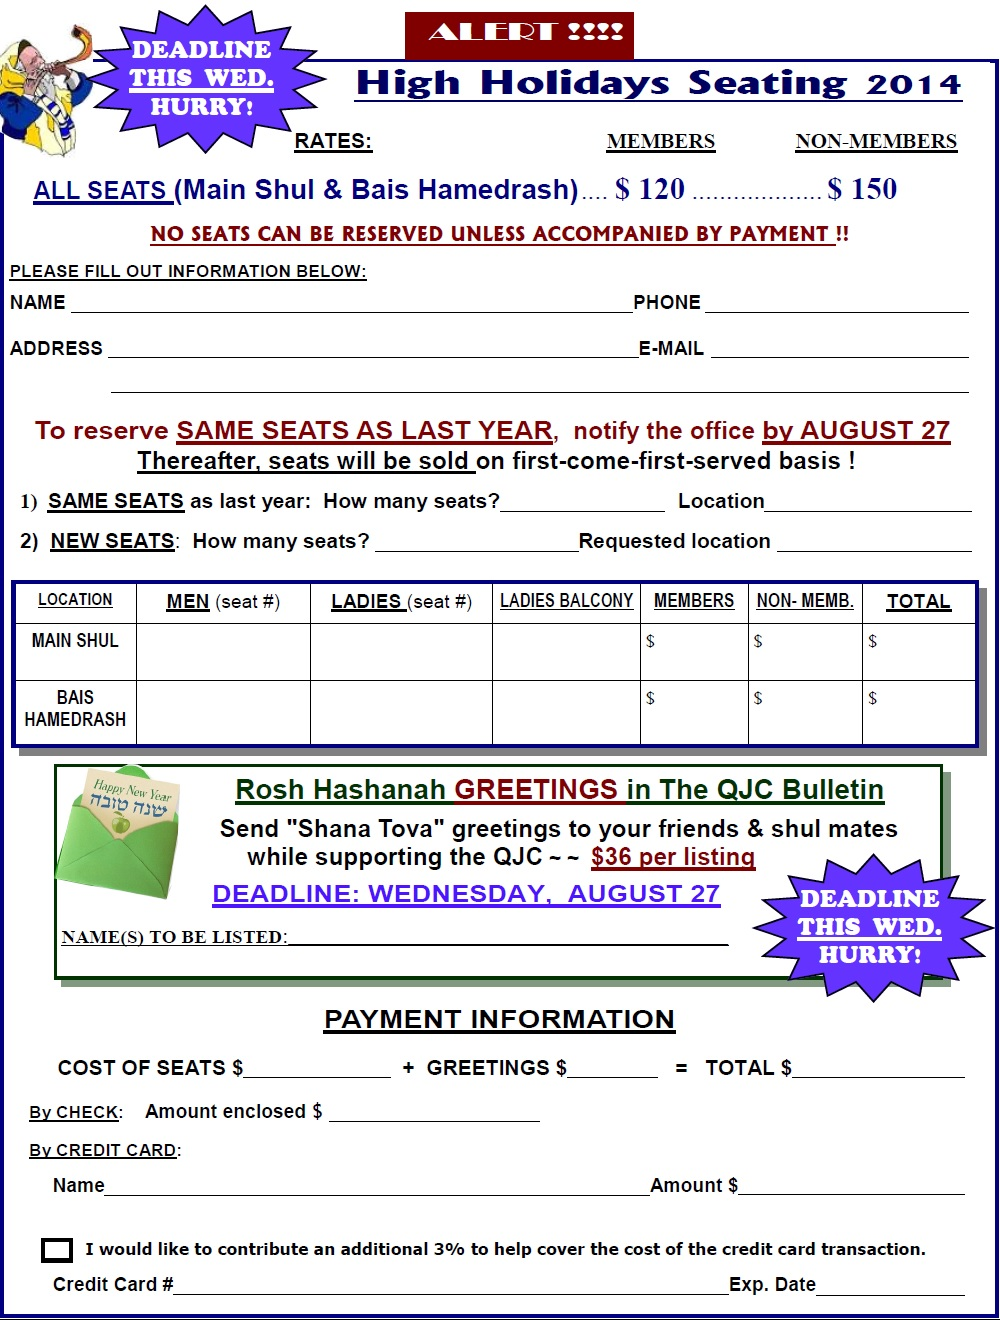 The deadline for reserving the SAME HIGH HOLIDAY SEATS you had last year, is tomorrow Wednesday, August 27. Call the office ASAP!  SEE  THE  FORM  BELOW...